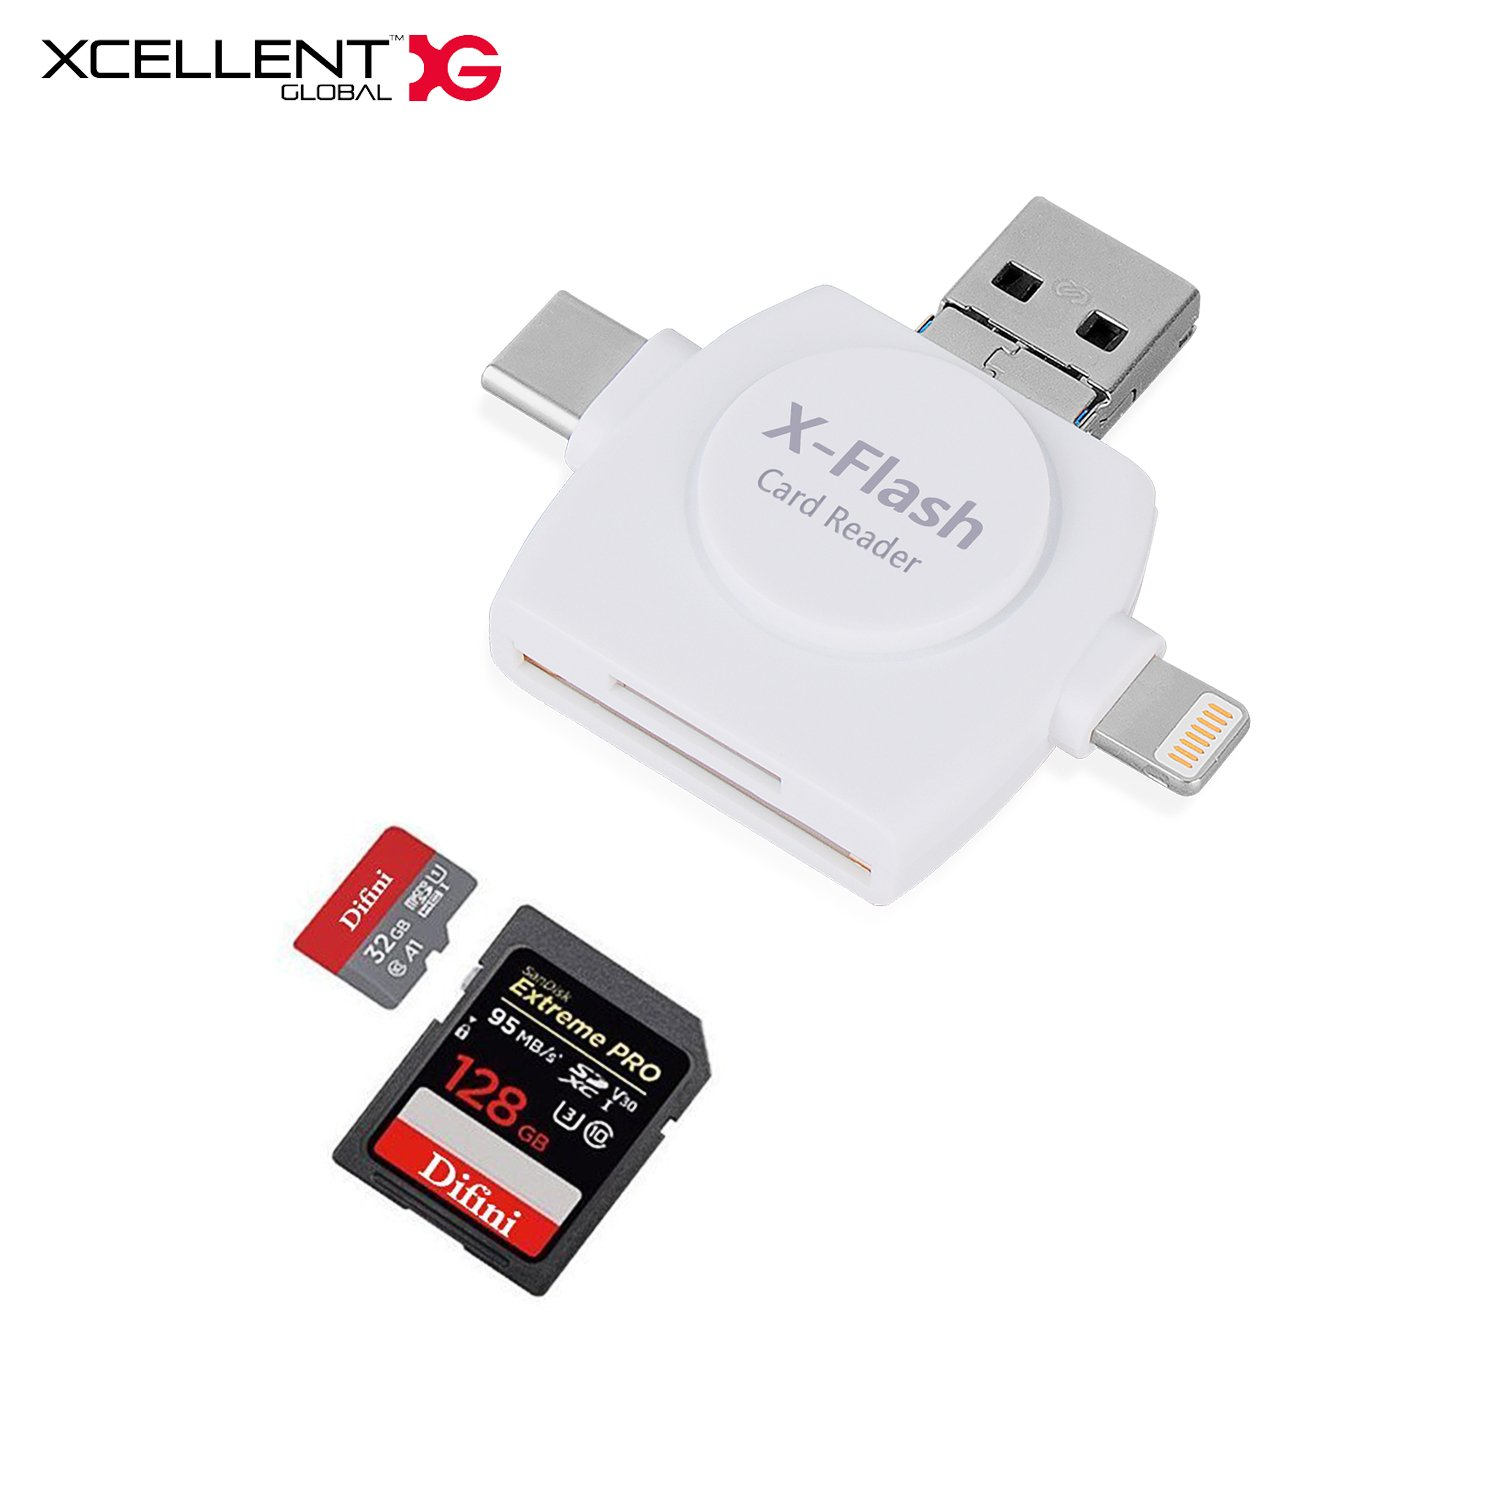 Xcellent Global Type C USB Connector Micro SD & TF Card Reader Memory Card Reader Adapter 4-in-1 Flash Drive for iPhone iPad Mac S8 S8+ Note 8 PC046